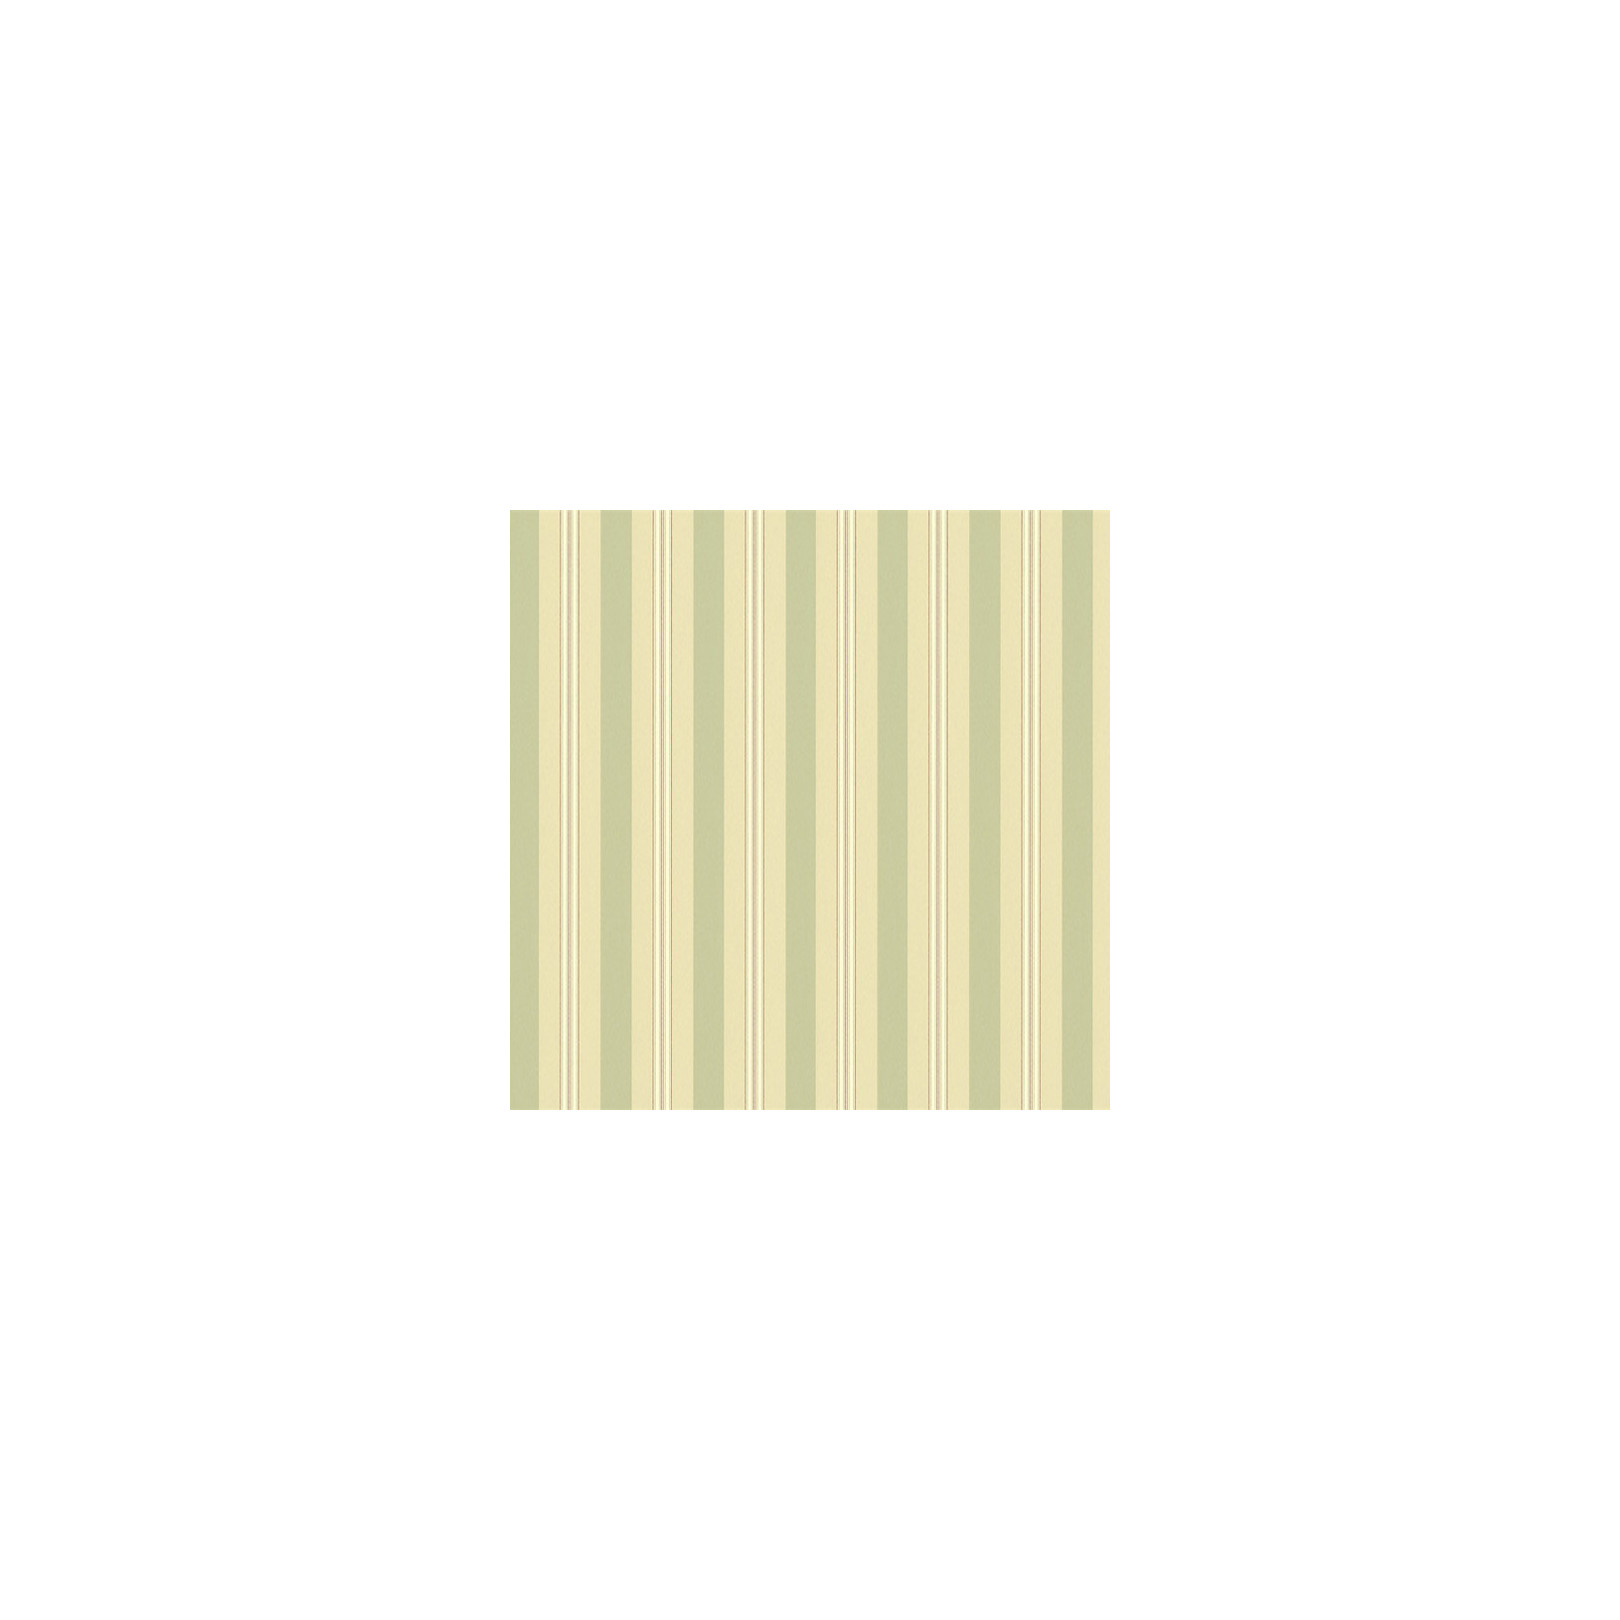 Papier peint - Thibaut - Kensington Stripe - Black on Taupe